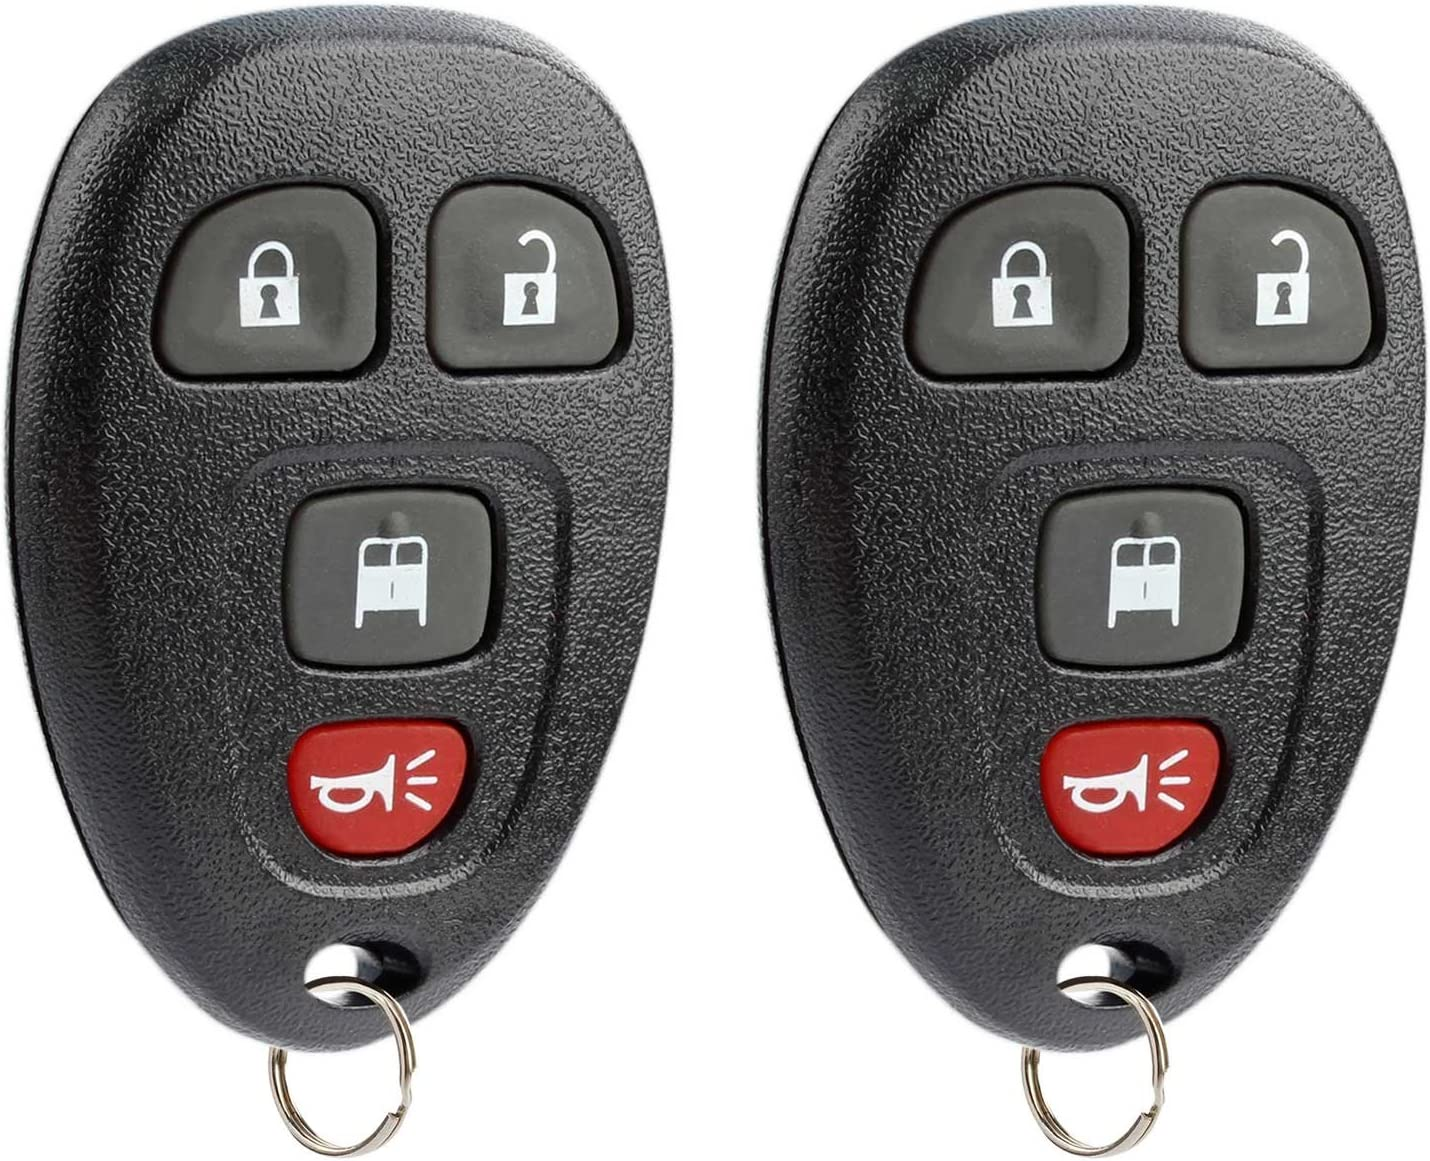 fits 2007-2014 Chevy Express/GMC Savana Keyless Entry Remote Key Fob 20877108, Set of 2